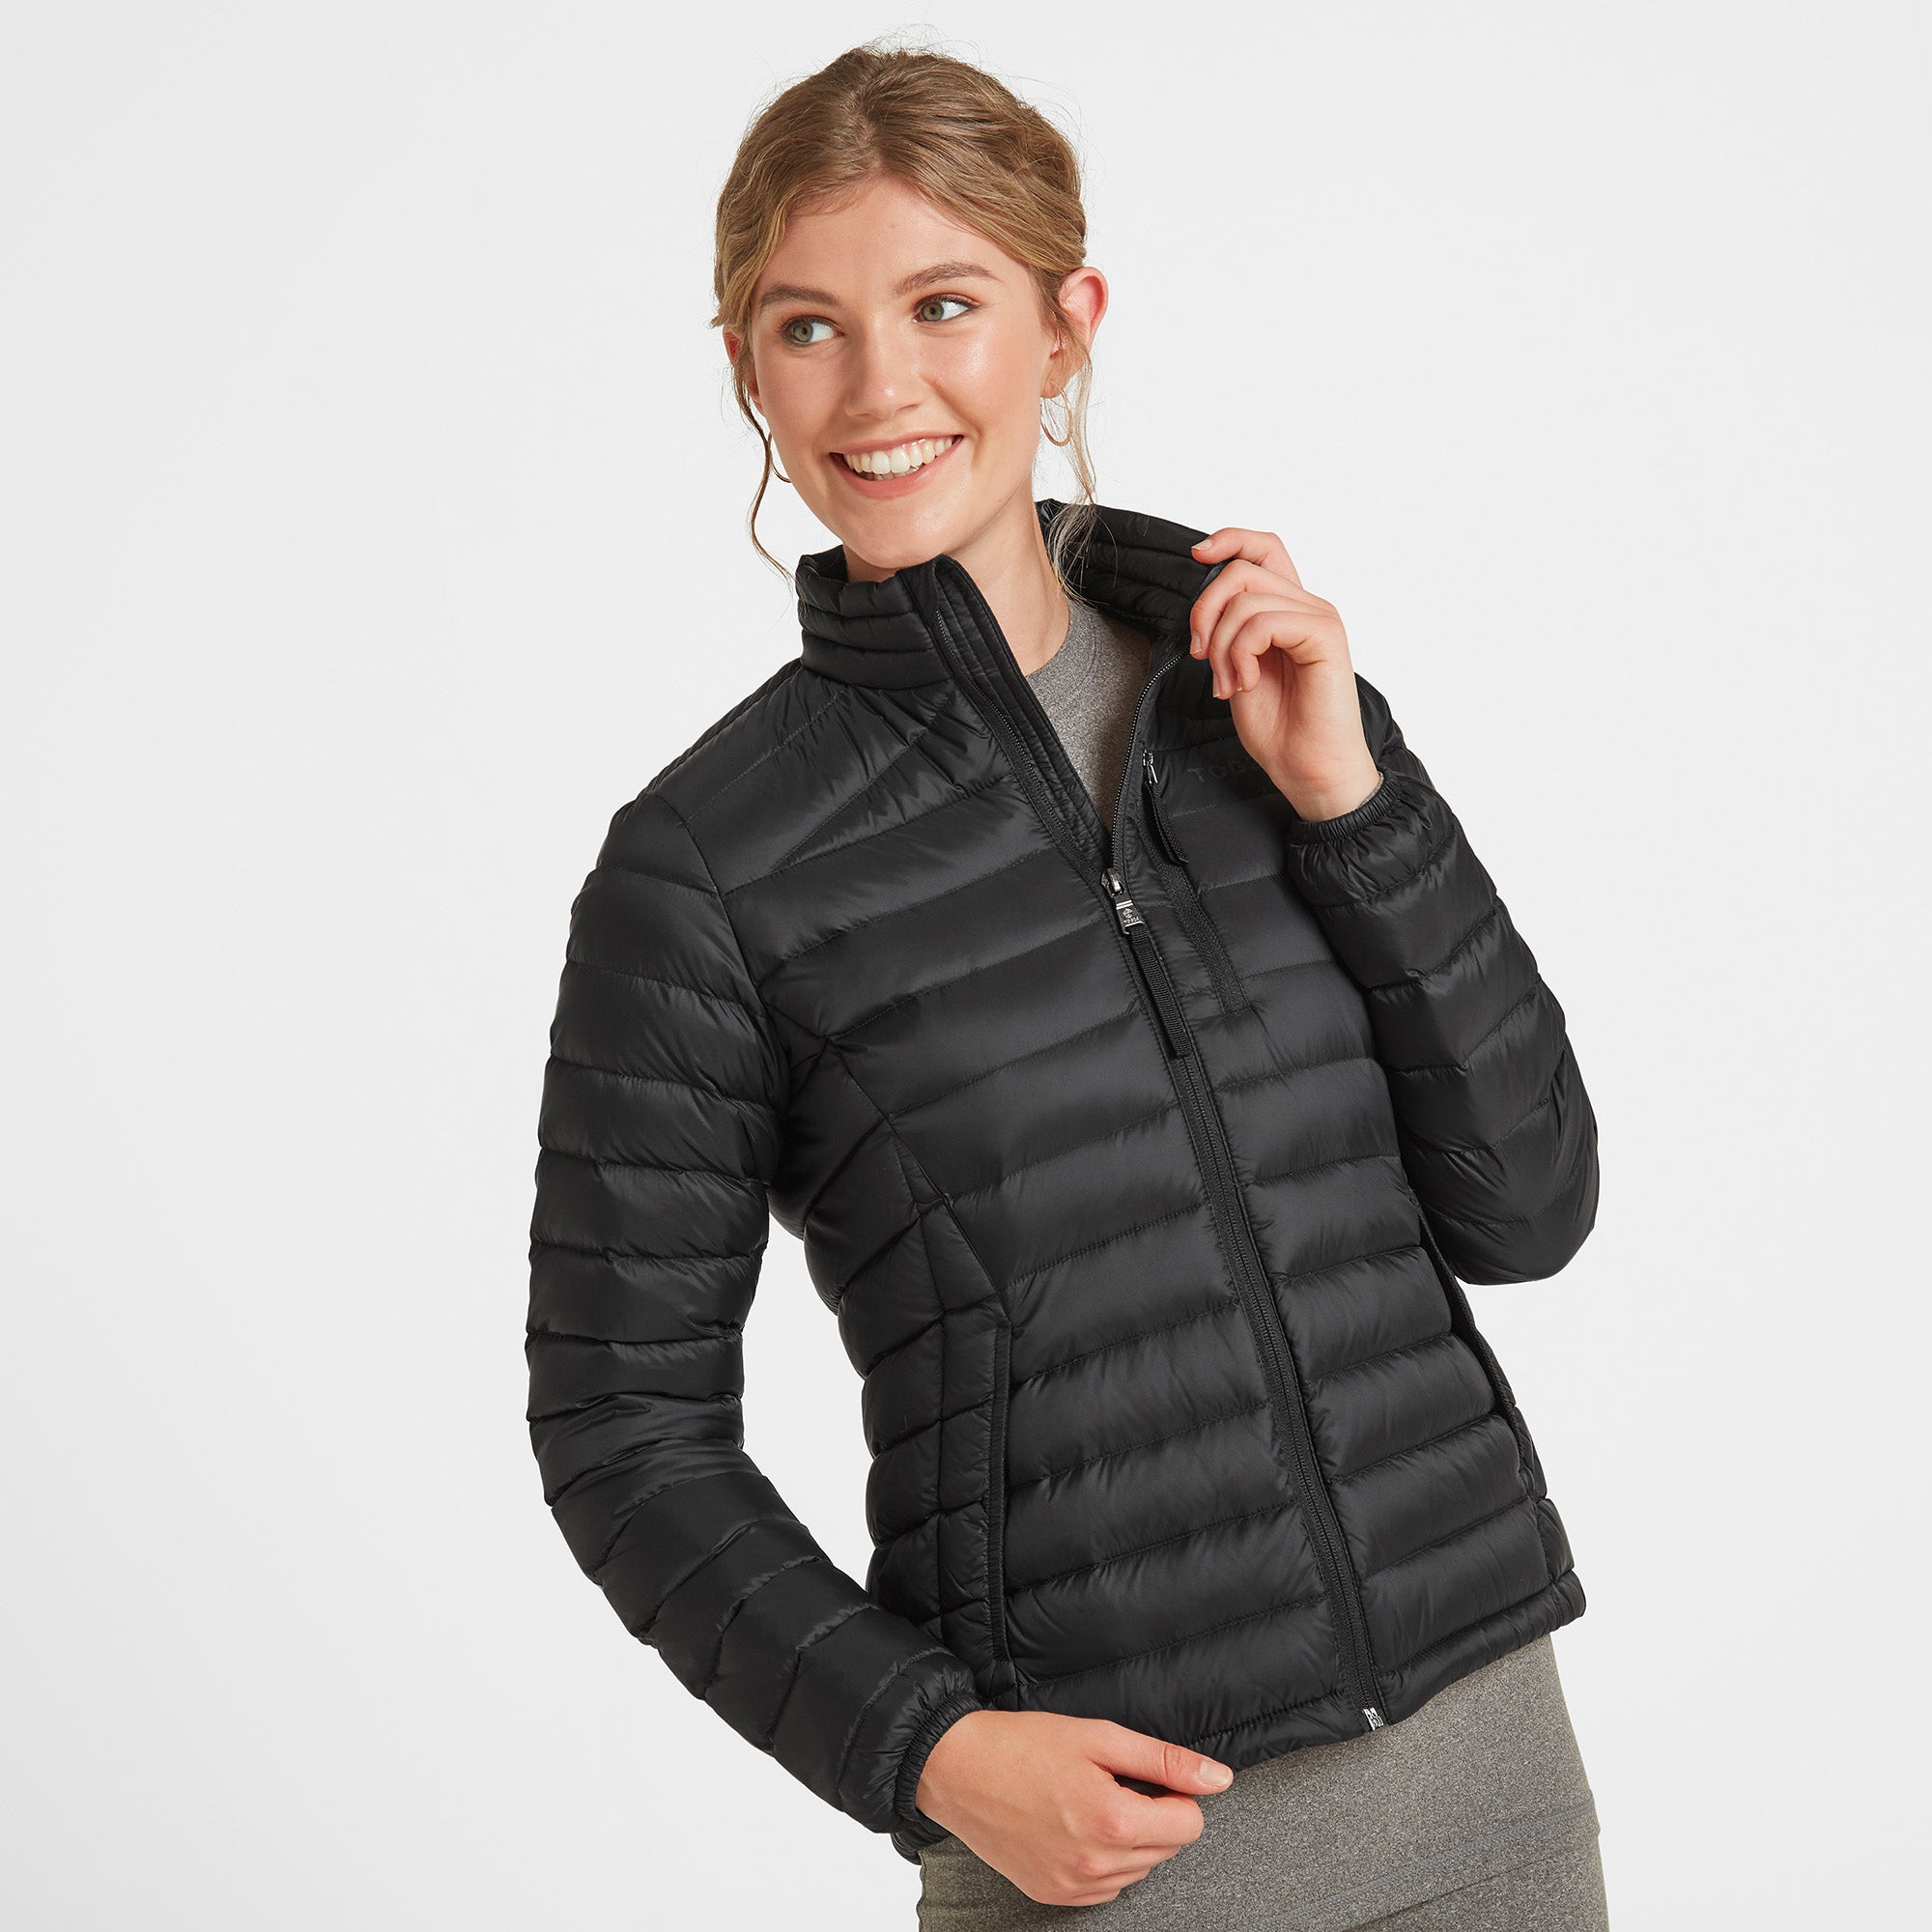 Drax Womens Funnel Down Jacket - Black